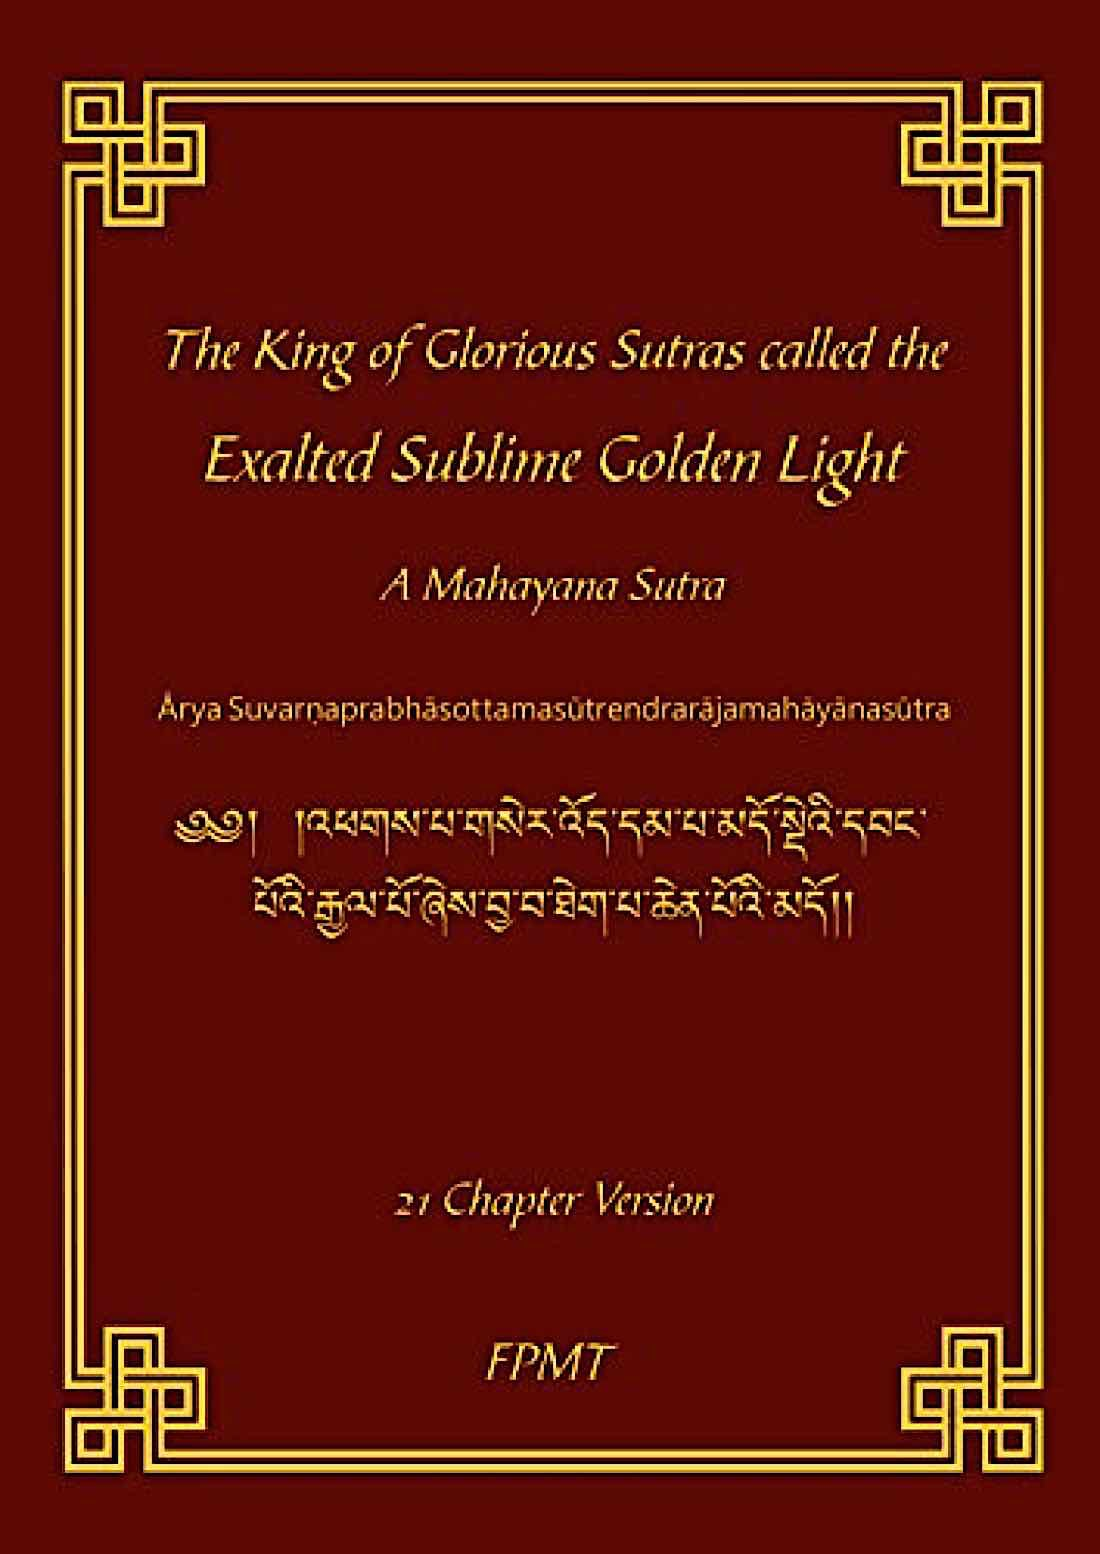 Buddha Weekly Downloadable King of Glorious Sutras Exalted Sublime Golden Lilght Sutra Buddhism